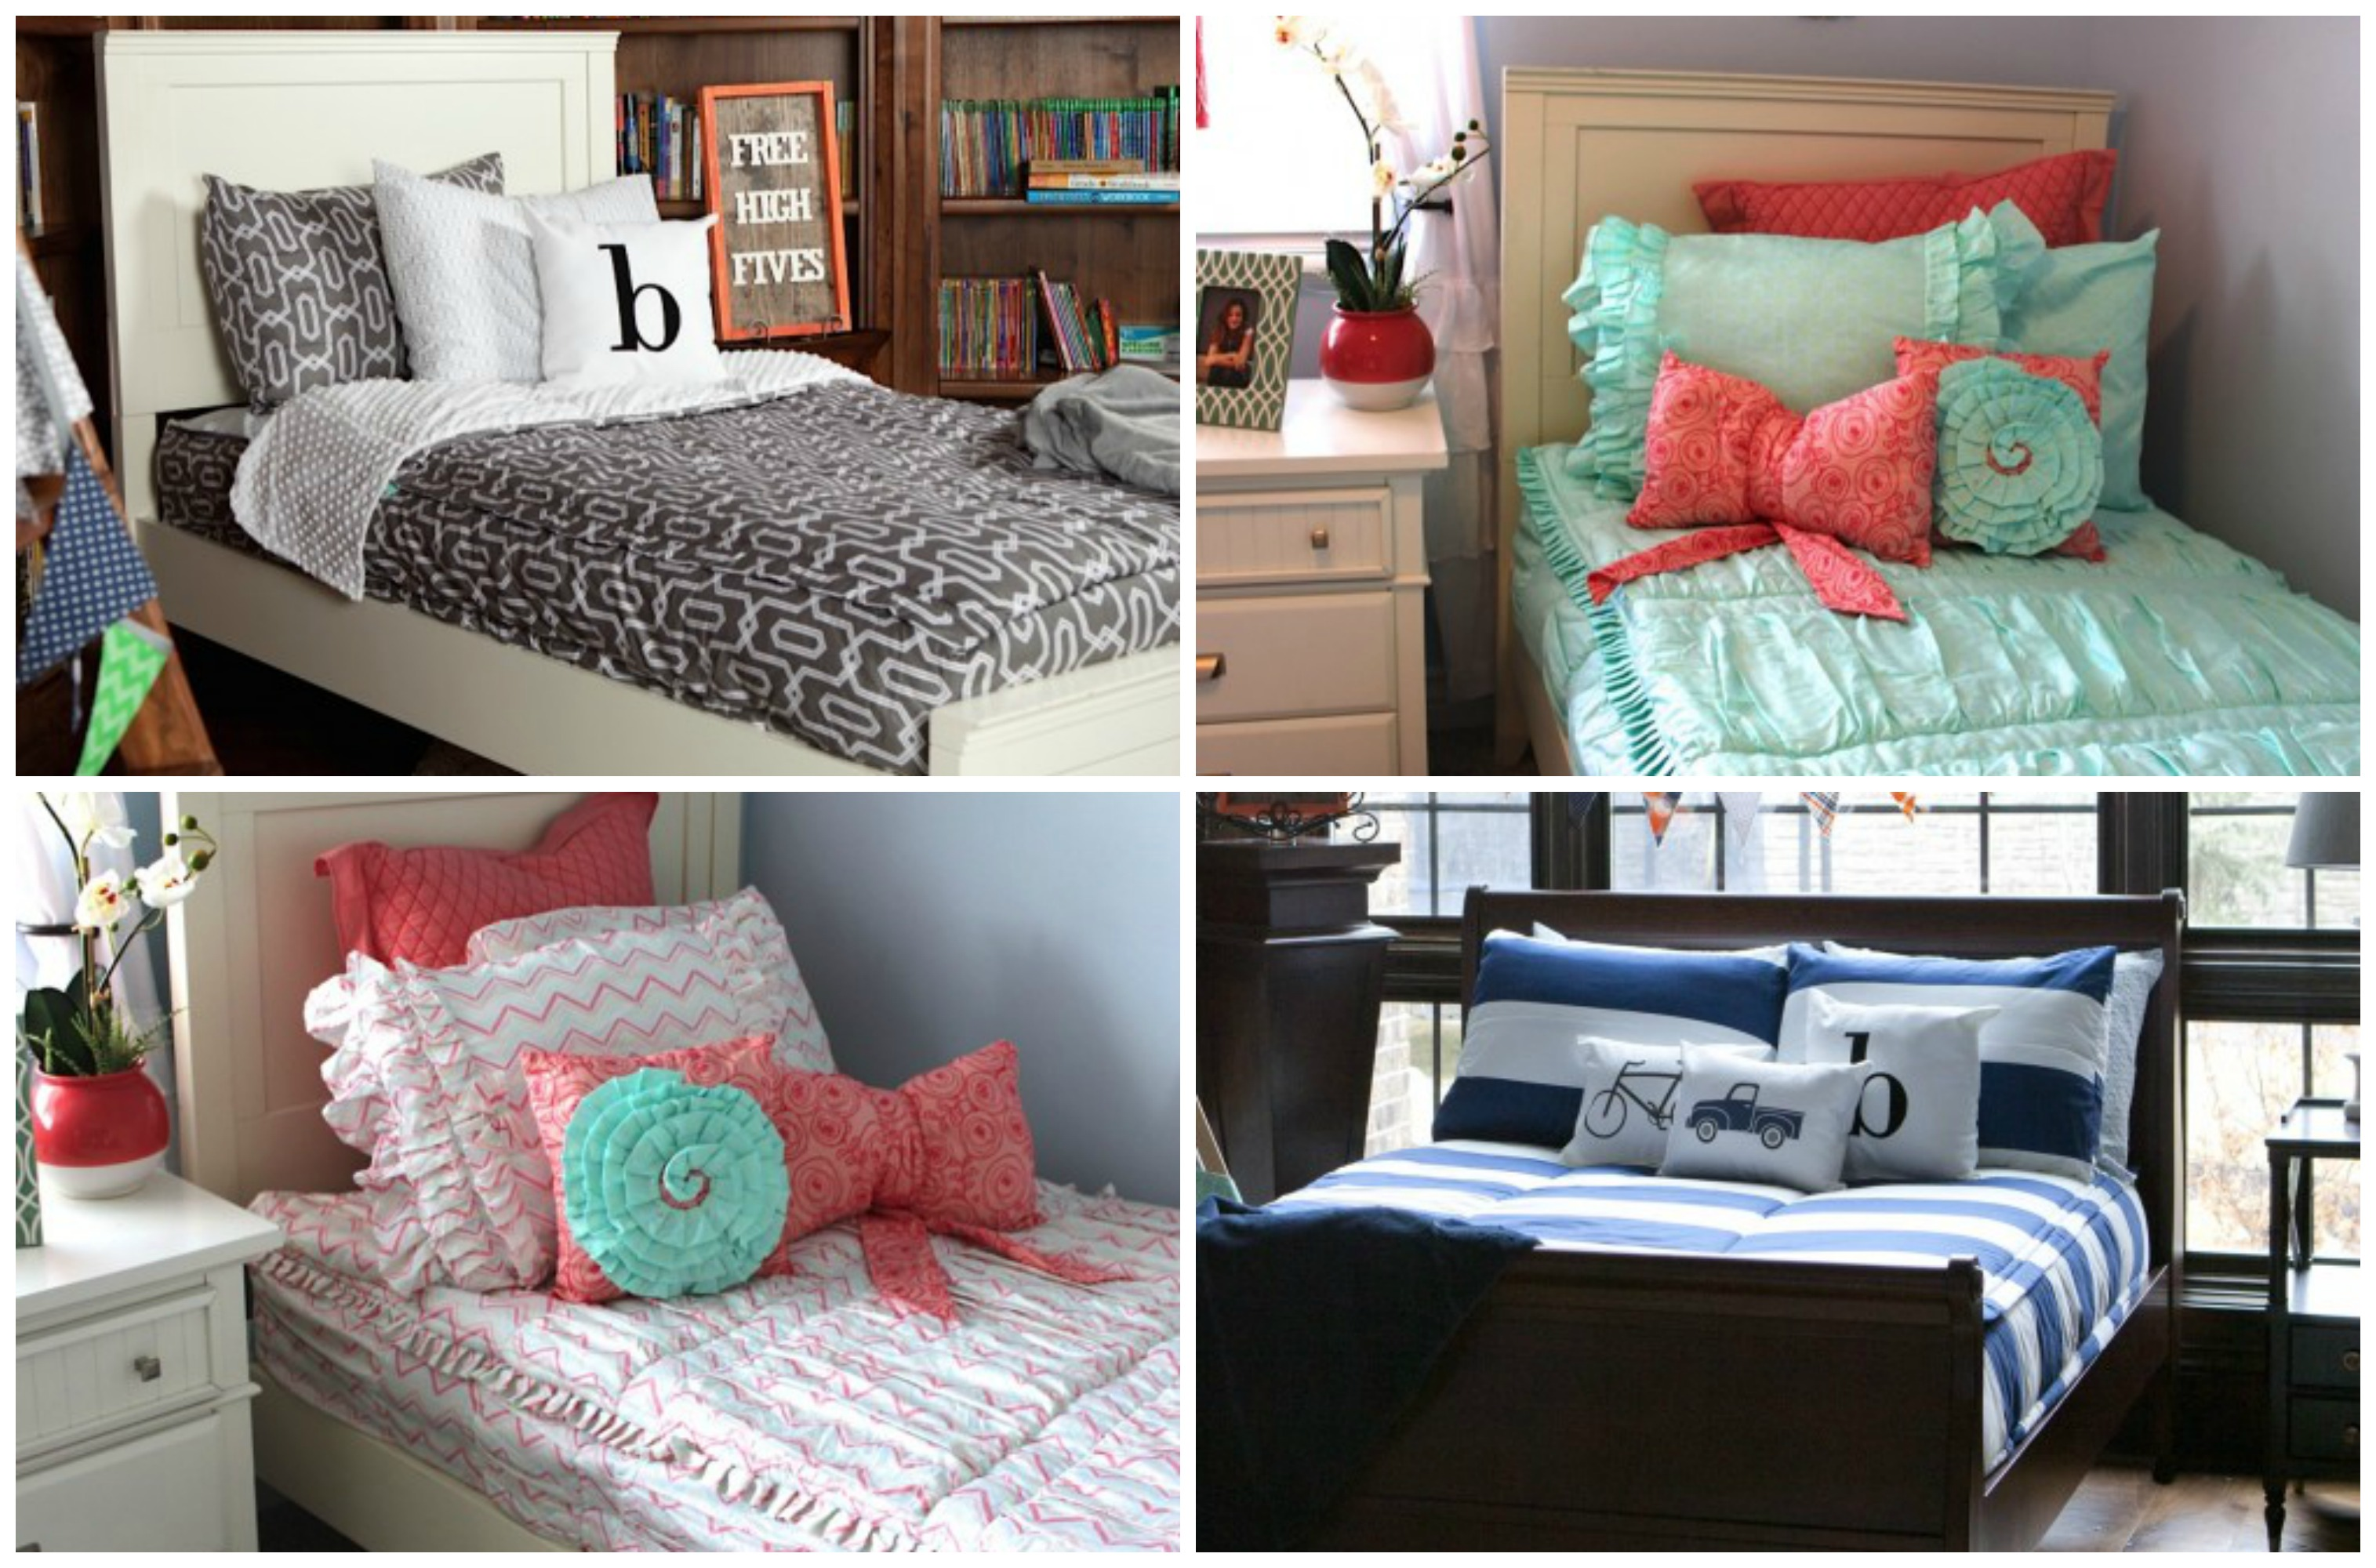 beddys zipper bedding…making your bed was never easier!